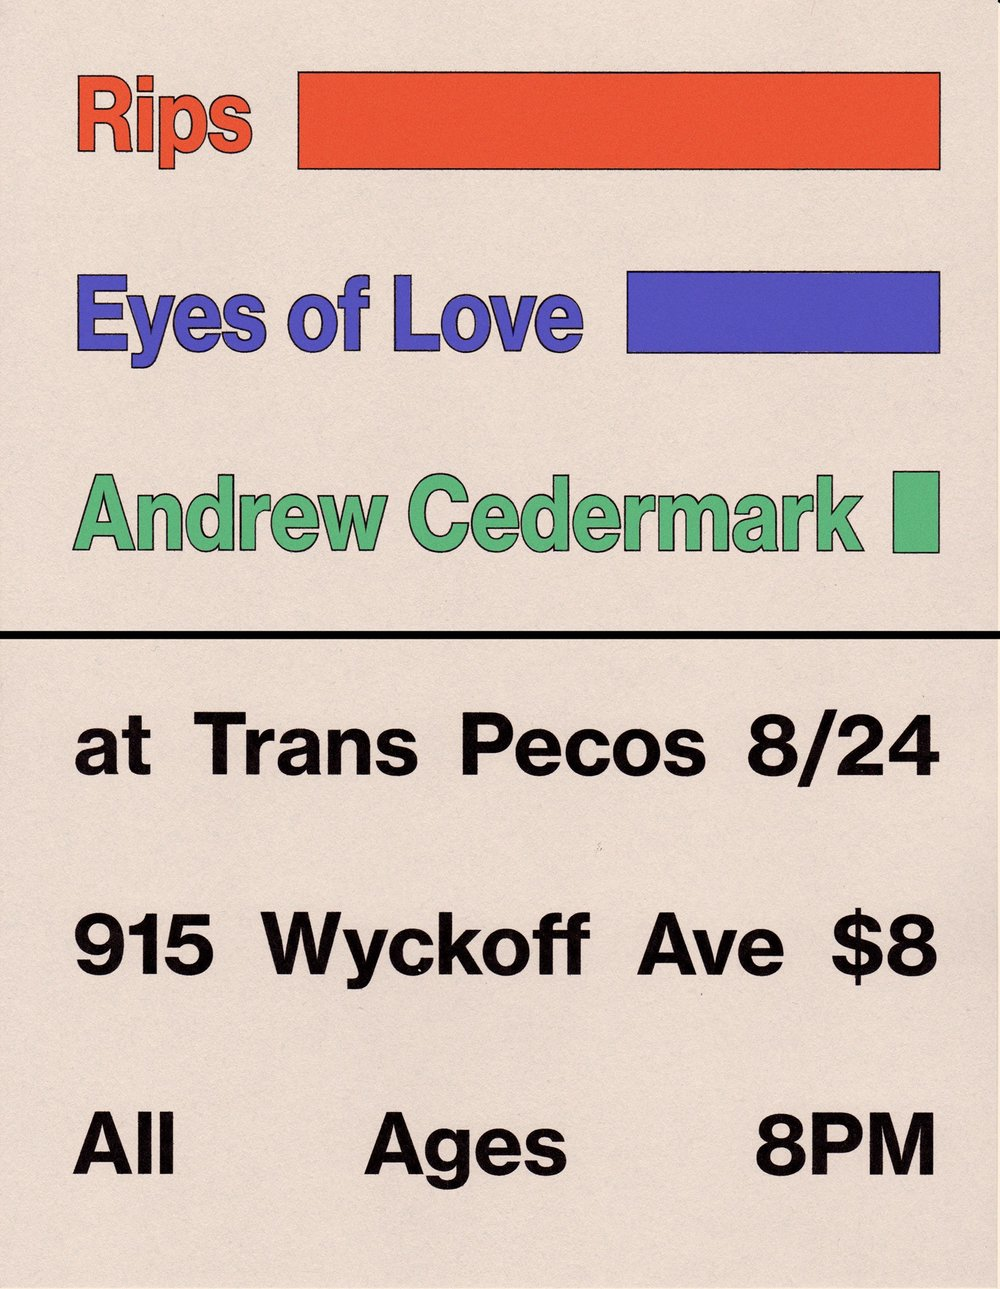 Rips ::::Eyes of Love :::::::Andrew Cedermark ++selections by Munrox b2b Sarah420